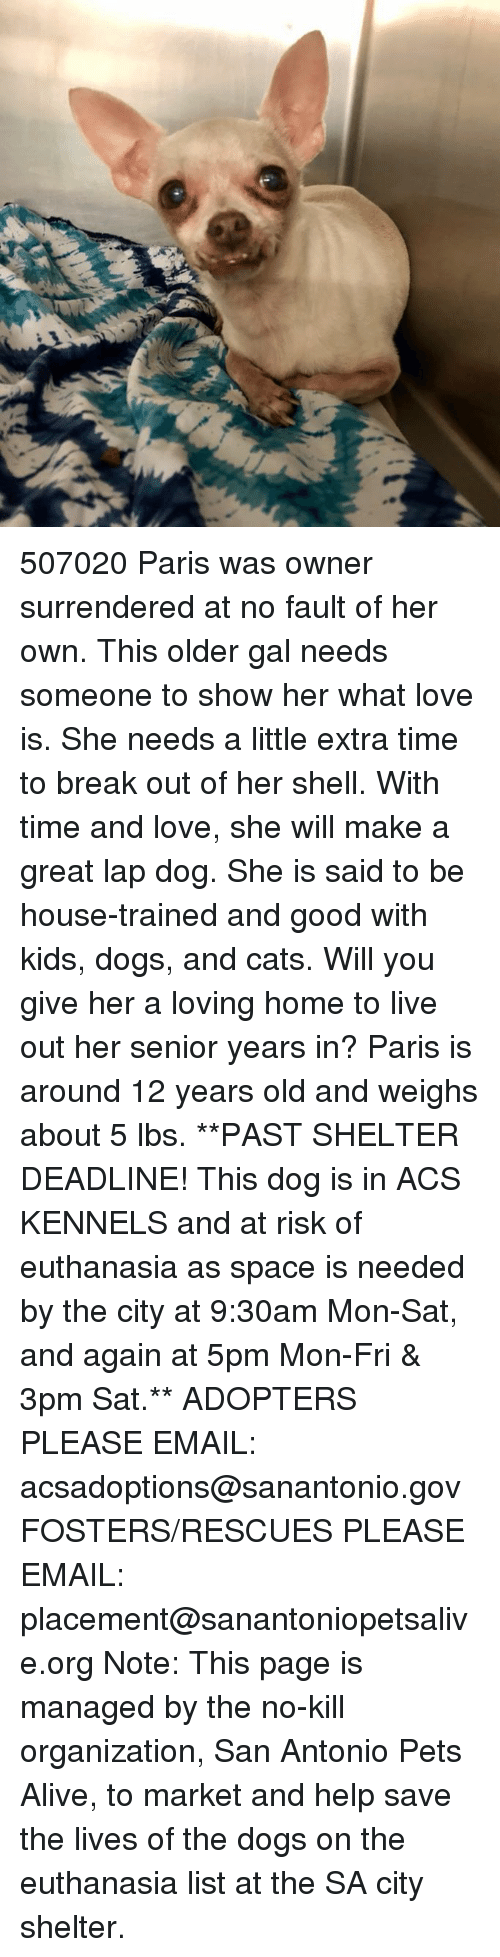 Alive, Cats, and Dogs: 507020 Paris was owner surrendered at no fault of her own. This older gal needs someone to show her what love is. She needs a little extra time to break out of her shell. With time and love, she will make a great lap dog. She is said to be house-trained and good with kids, dogs, and cats. Will you give her a loving home to live out her senior years in? Paris is around 12 years old and weighs about 5 lbs.  **PAST SHELTER DEADLINE! This dog is in ACS KENNELS and at risk of euthanasia as space is needed by the city at 9:30am Mon-Sat, and again at 5pm Mon-Fri & 3pm Sat.**  ADOPTERS PLEASE EMAIL: acsadoptions@sanantonio.gov  FOSTERS/RESCUES PLEASE EMAIL: placement@sanantoniopetsalive.org  Note: This page is managed by the no-kill organization, San Antonio Pets Alive, to market and help save the lives of the dogs on the euthanasia list at the SA city shelter.